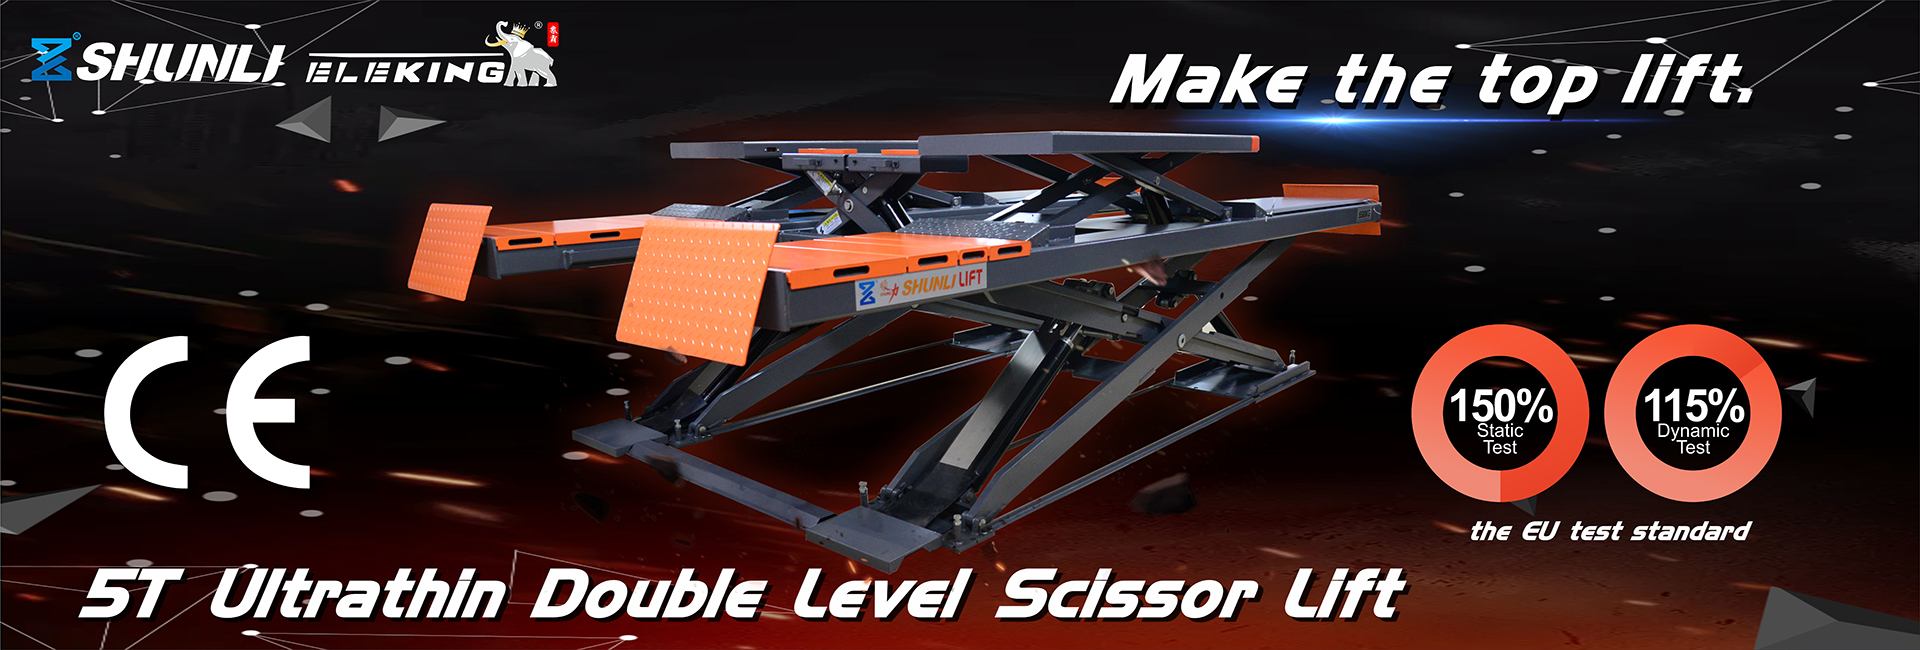 Scissor Lift Two Post Lift, 4 Post Lift, Auto-Service Equipment Supplier